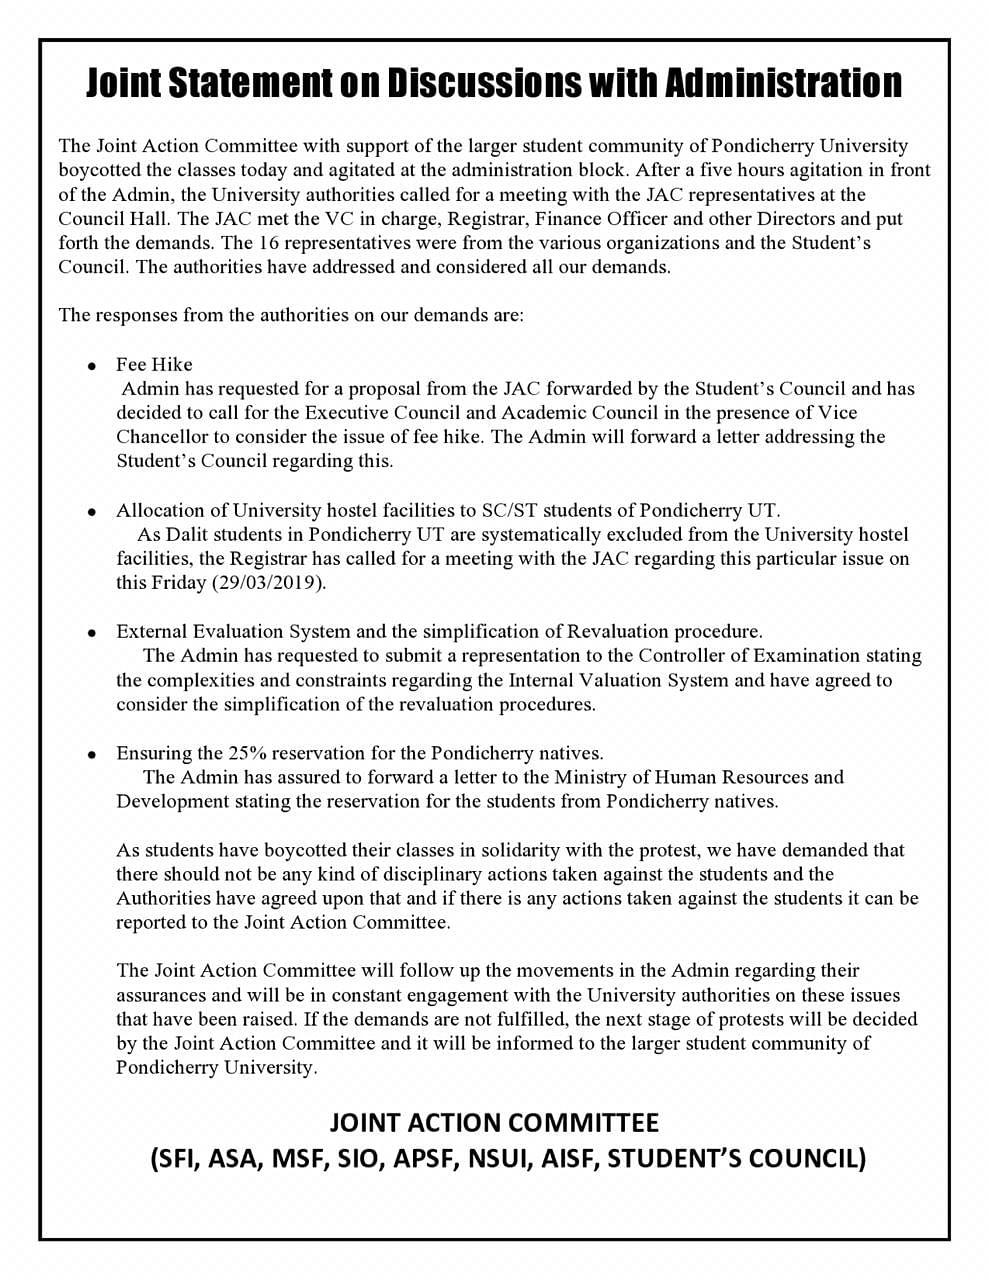 Demands put forth by the Joint Action Committee.